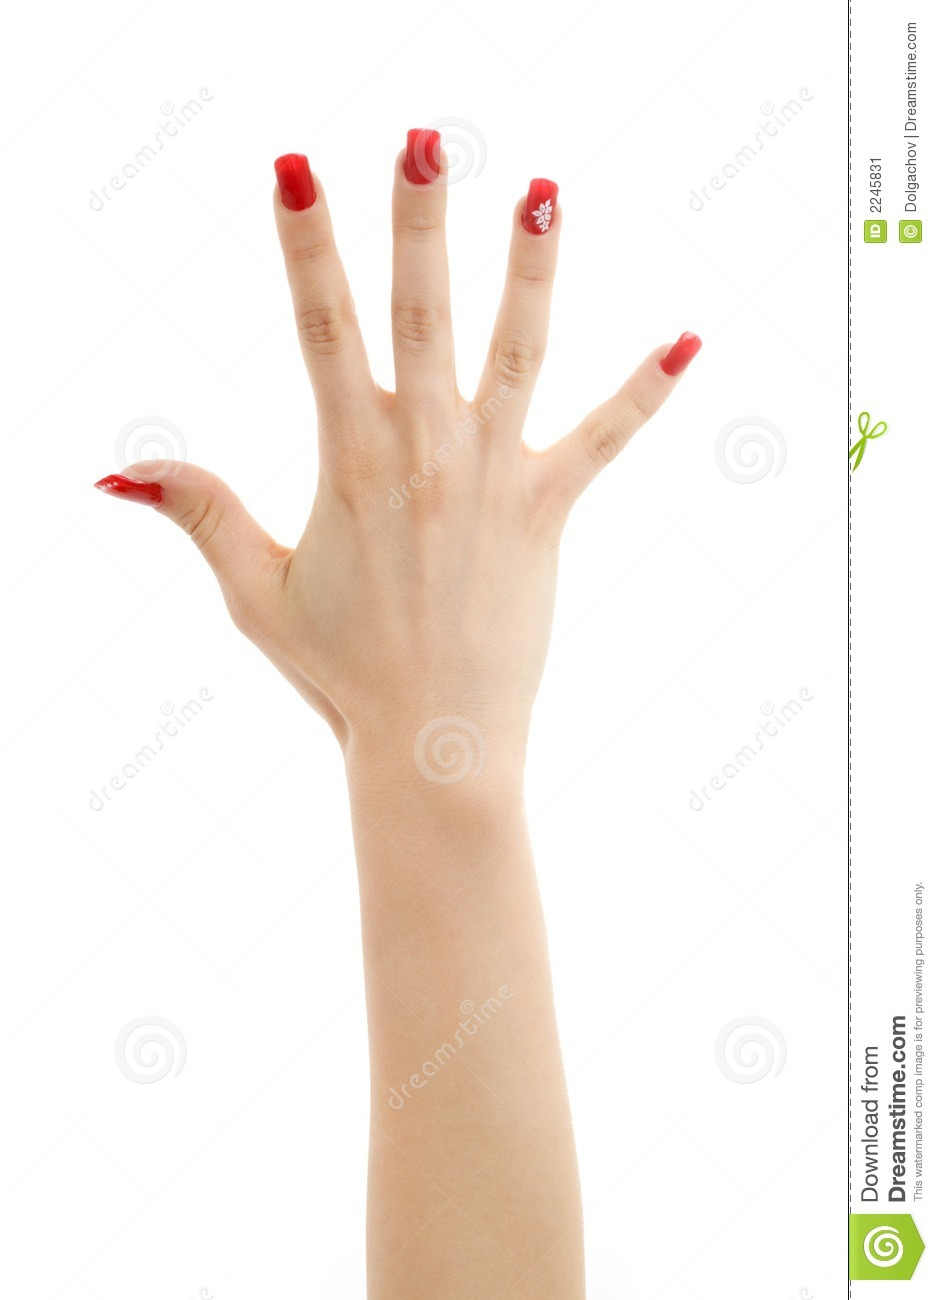 Red nails clipart 20 free Cliparts | Download images on ...